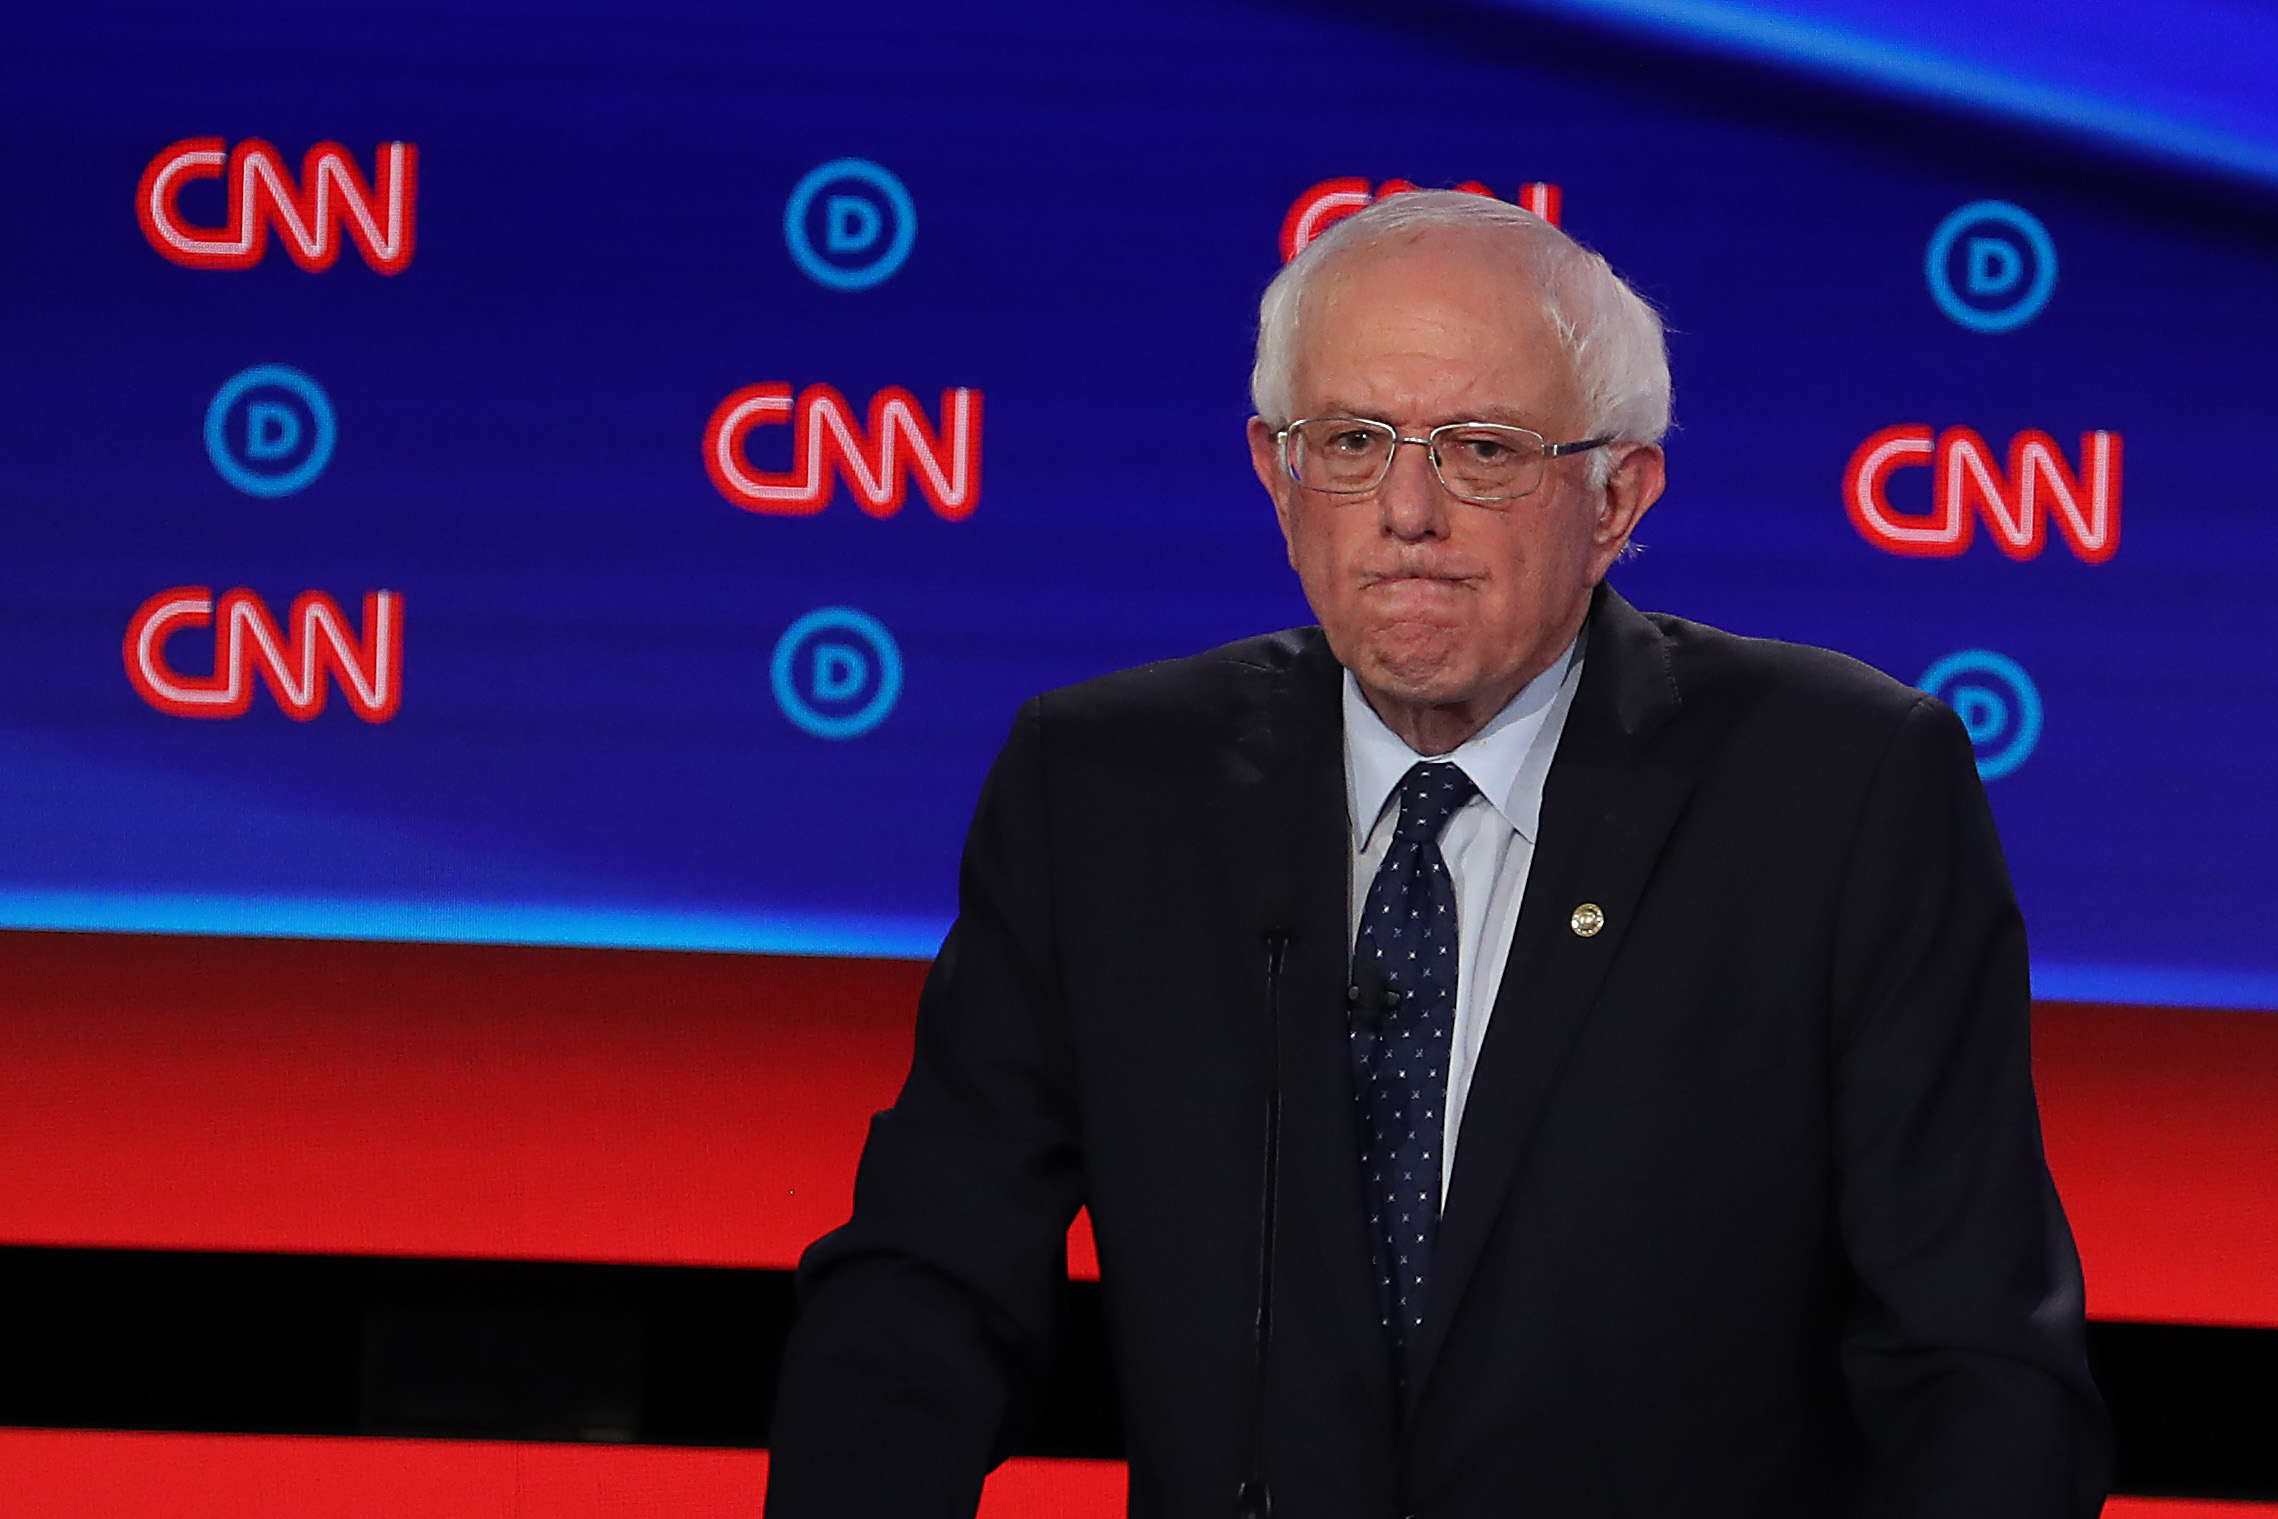 DETROIT, MICHIGAN - JULY 30: Democratic presidential candidate Sen. Bernie Sanders (I-VT) gestures during the Democratic Presidential Debate at the Fox Theatre July 30, 2019 in Detroit, Michigan. 20 Democratic presidential candidates were split into two groups of 10 to take part in the debate sponsored by CNN held over two nights at Detroit's Fox Theatre. (Photo by Justin Sullivan/Getty Images)